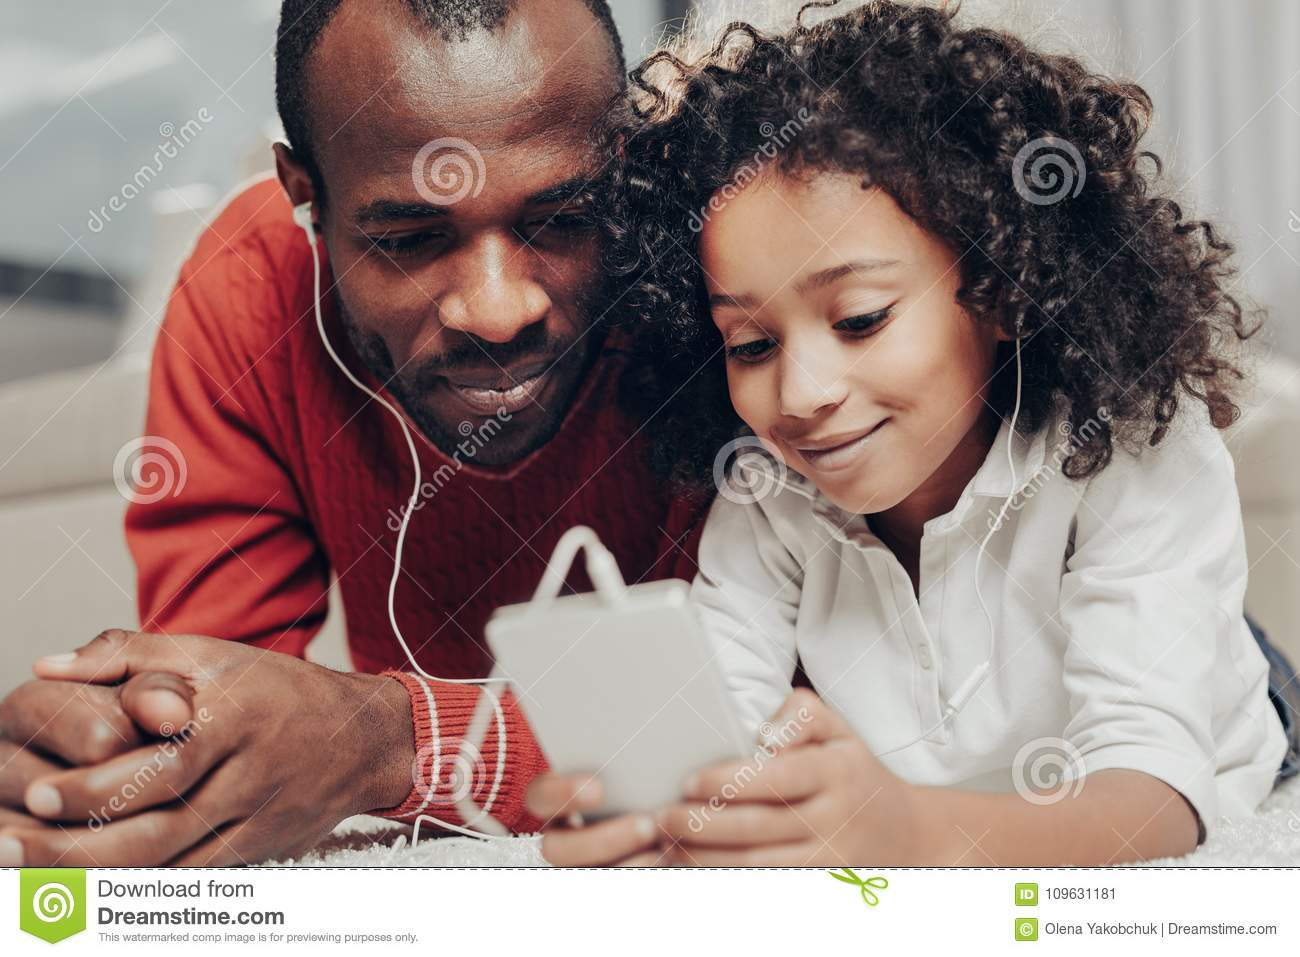 Download Satisfied Dad And Child Enjoying Melody With Earphones Stock Image - Image of earphone, fondness: 109631181